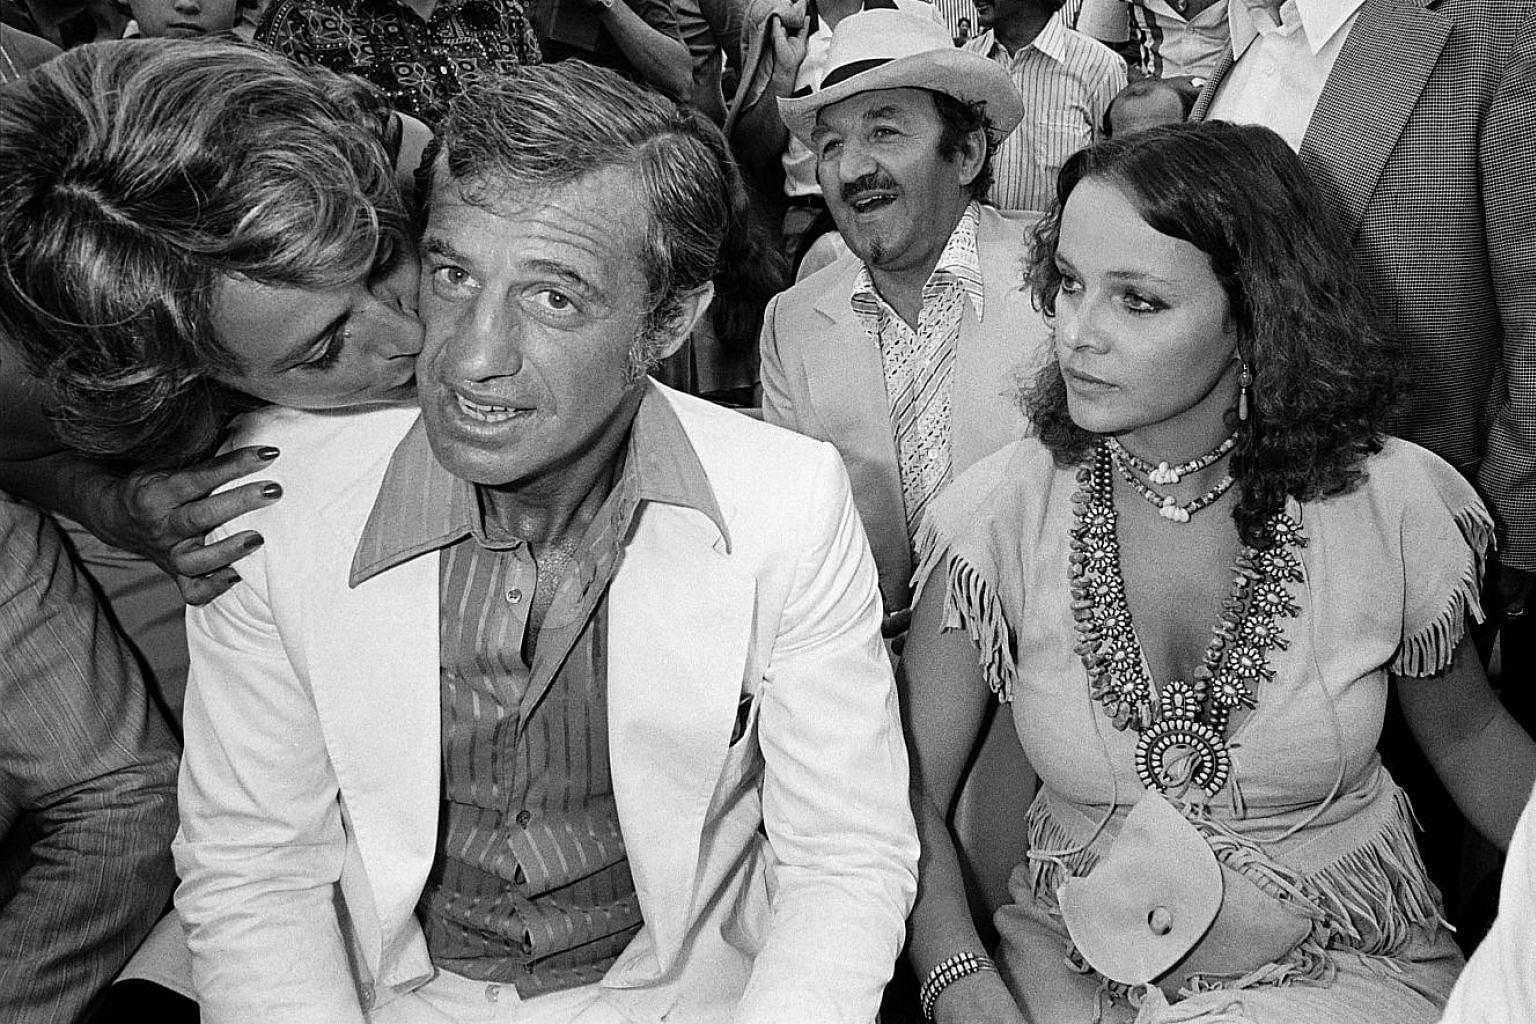 Jean-Paul Belmondo (second from far left), one of France's biggest screen stars, and Italian actress Laura Antonelli (left) in a 1976 photo.